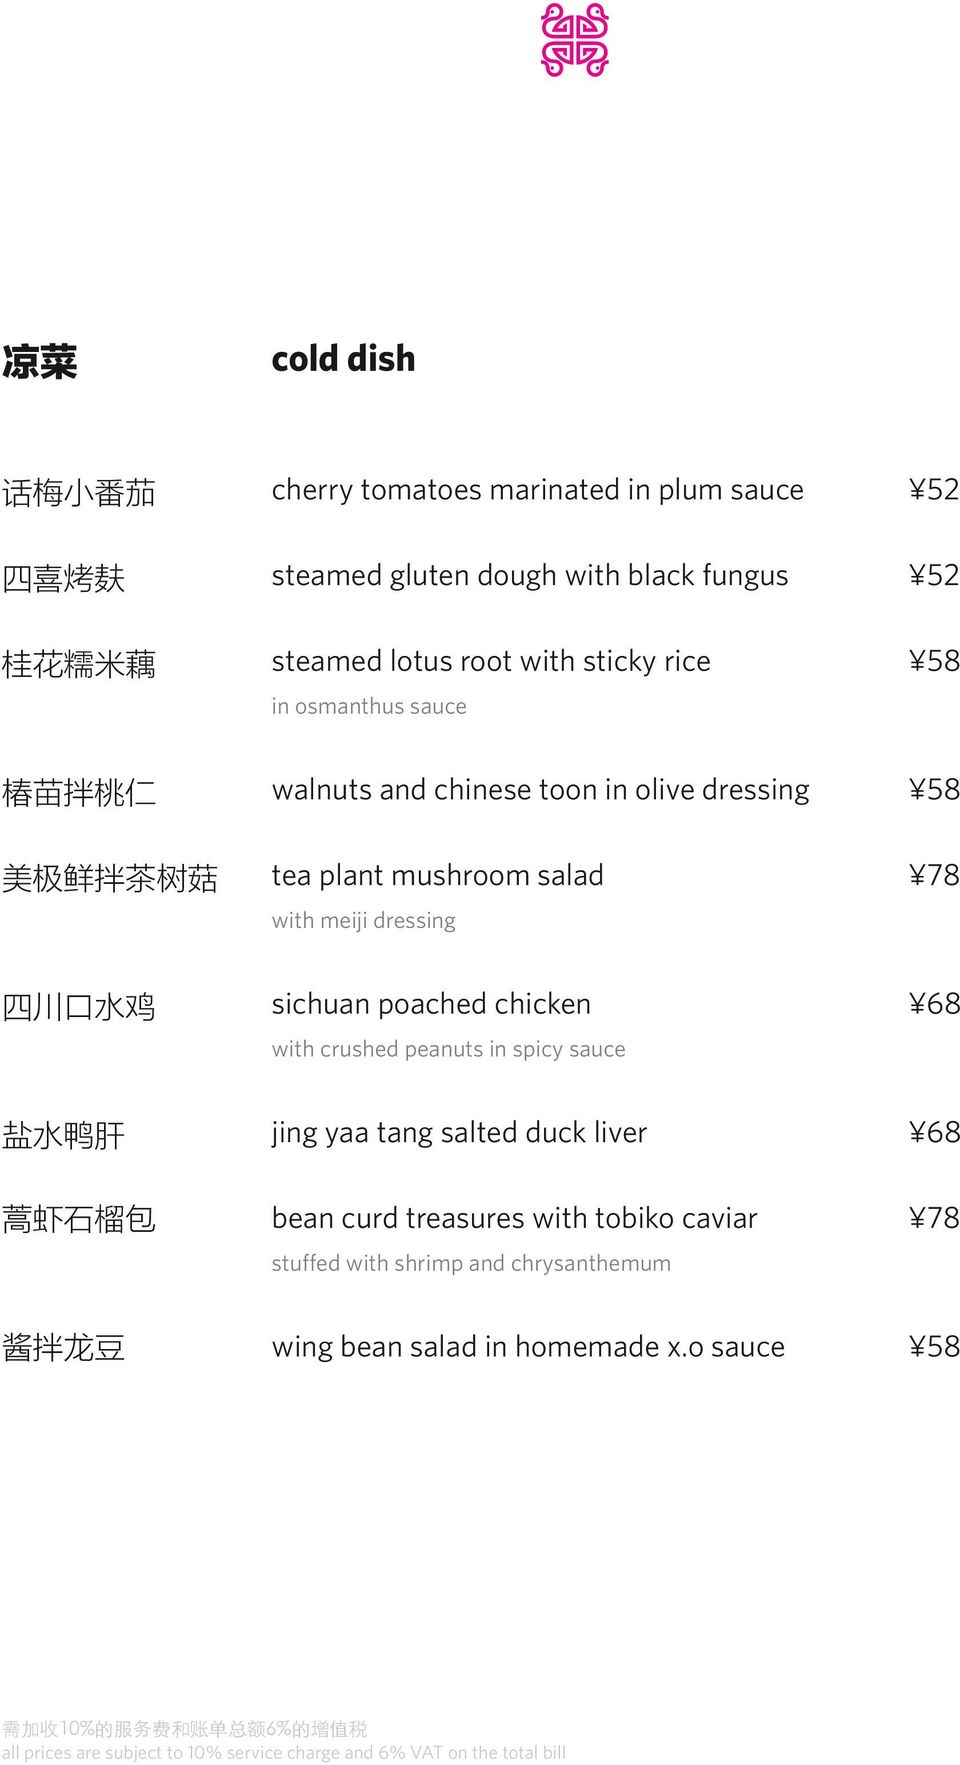 salad with meiji dressing 78 四 川 口 水 鸡 sichuan poached chicken with crushed peanuts in spicy sauce 68 盐 水 鸭 肝 jing yaa tang salted duck